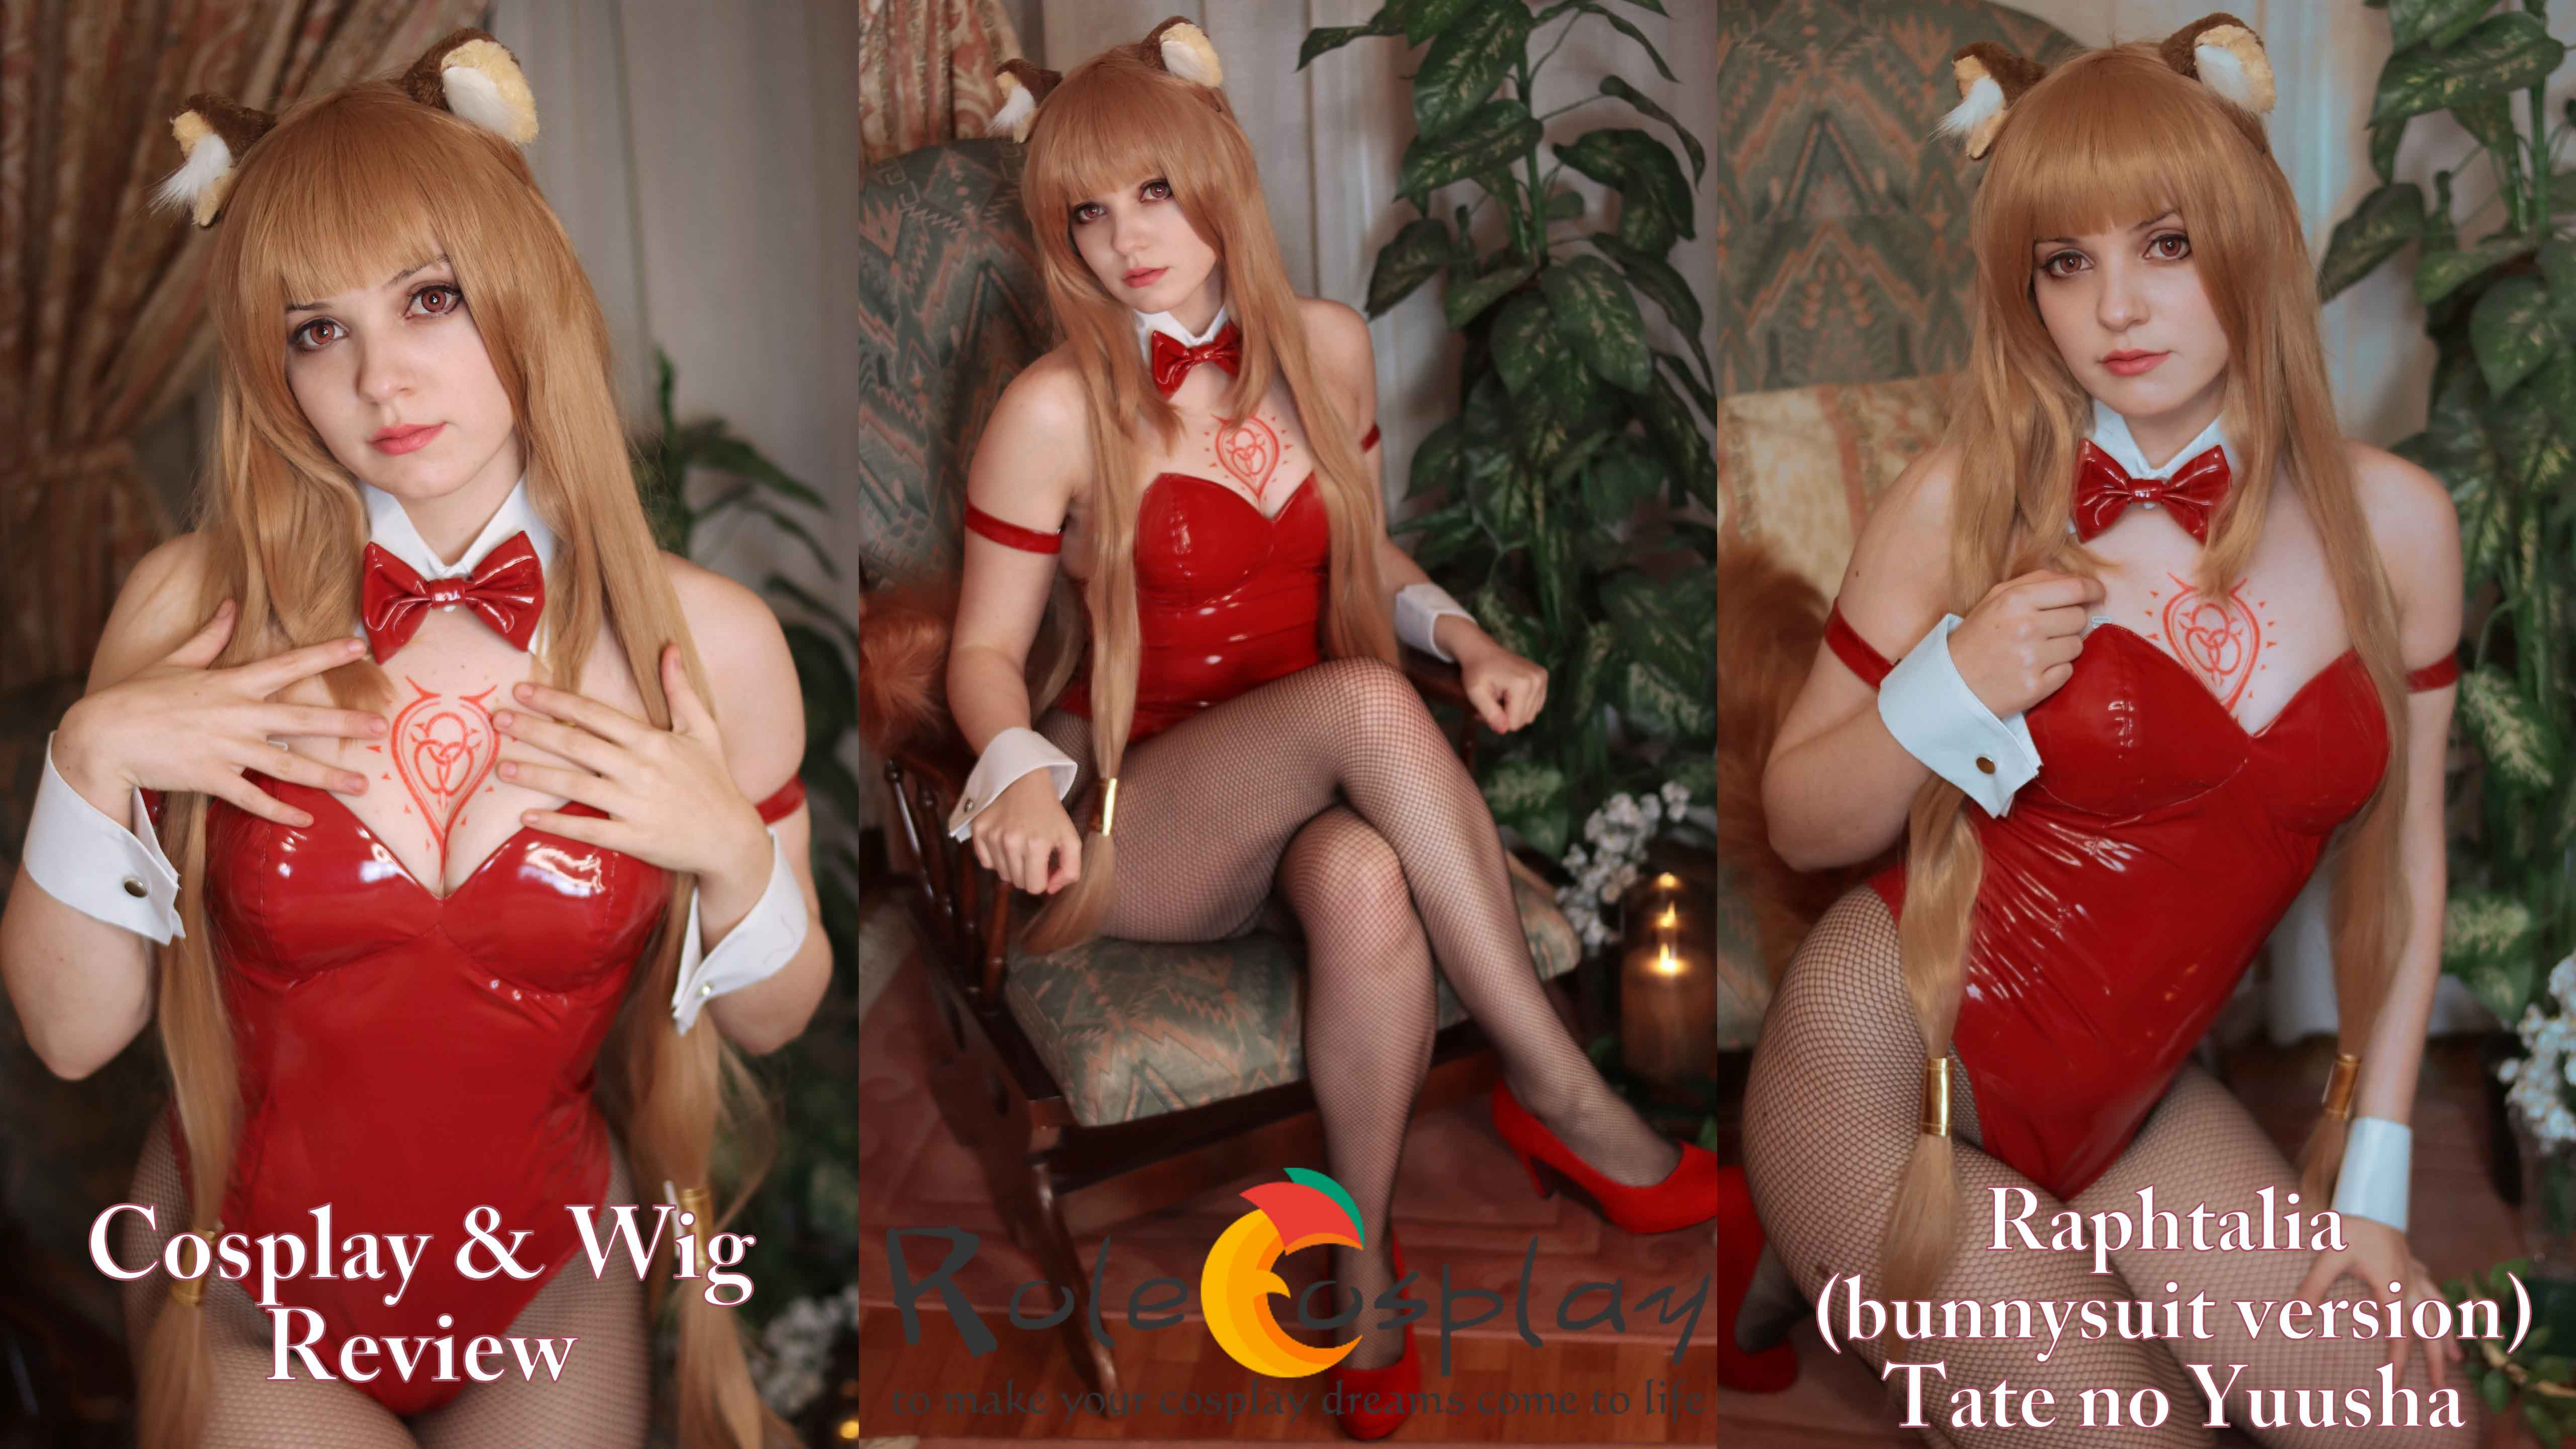 Cosplay & wig review: Raphtalia bunnysuit (Tate no Yuusha) from Rolecosplay